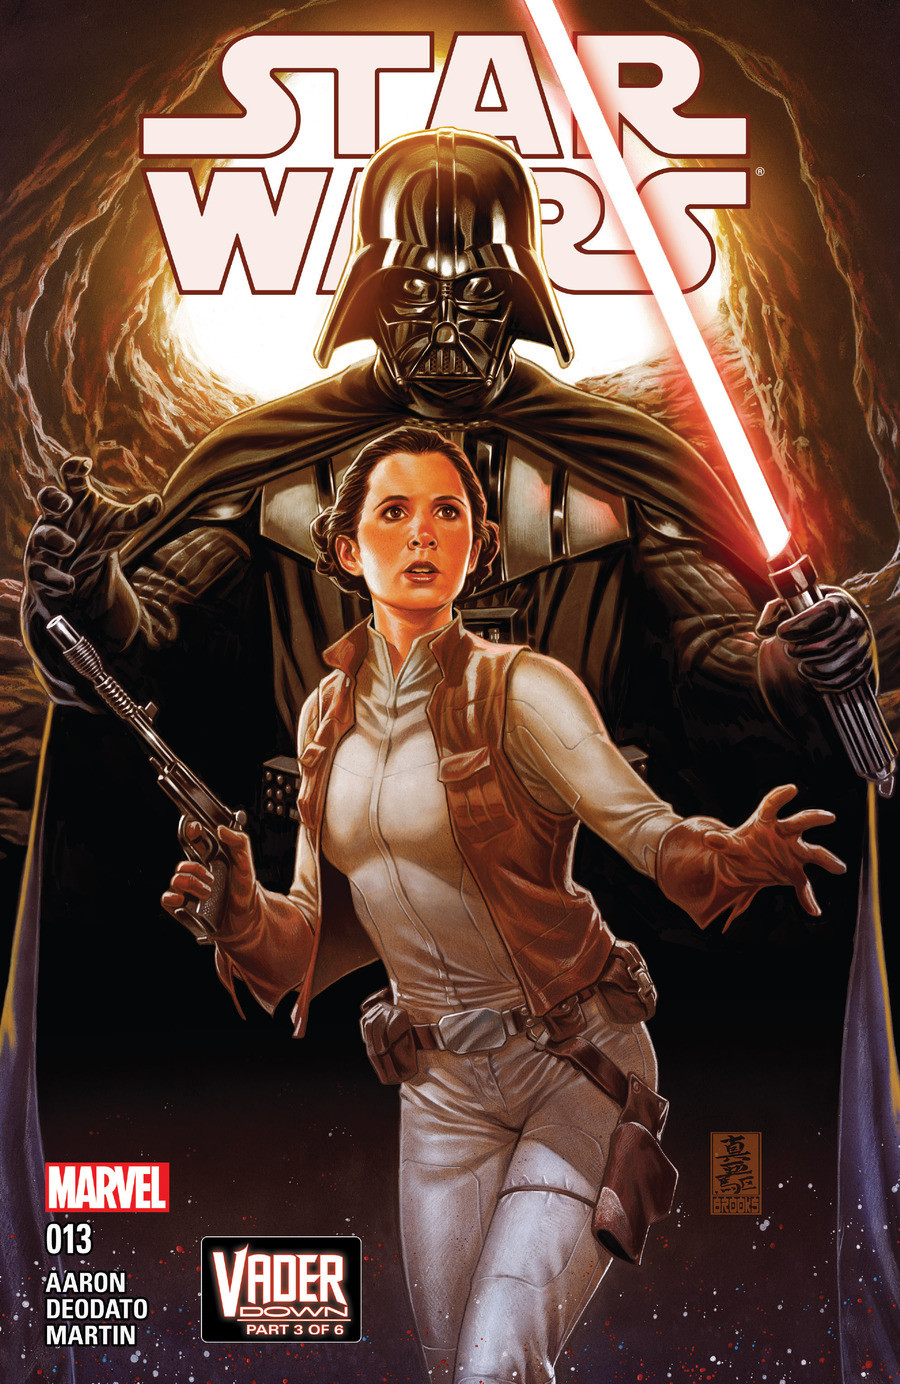 Star Wars Vader Down part 3. Its time for Vader Down, part 3. Issue 13 of the Marvel Star Wars comic series. For all previous issues of this comic, click these